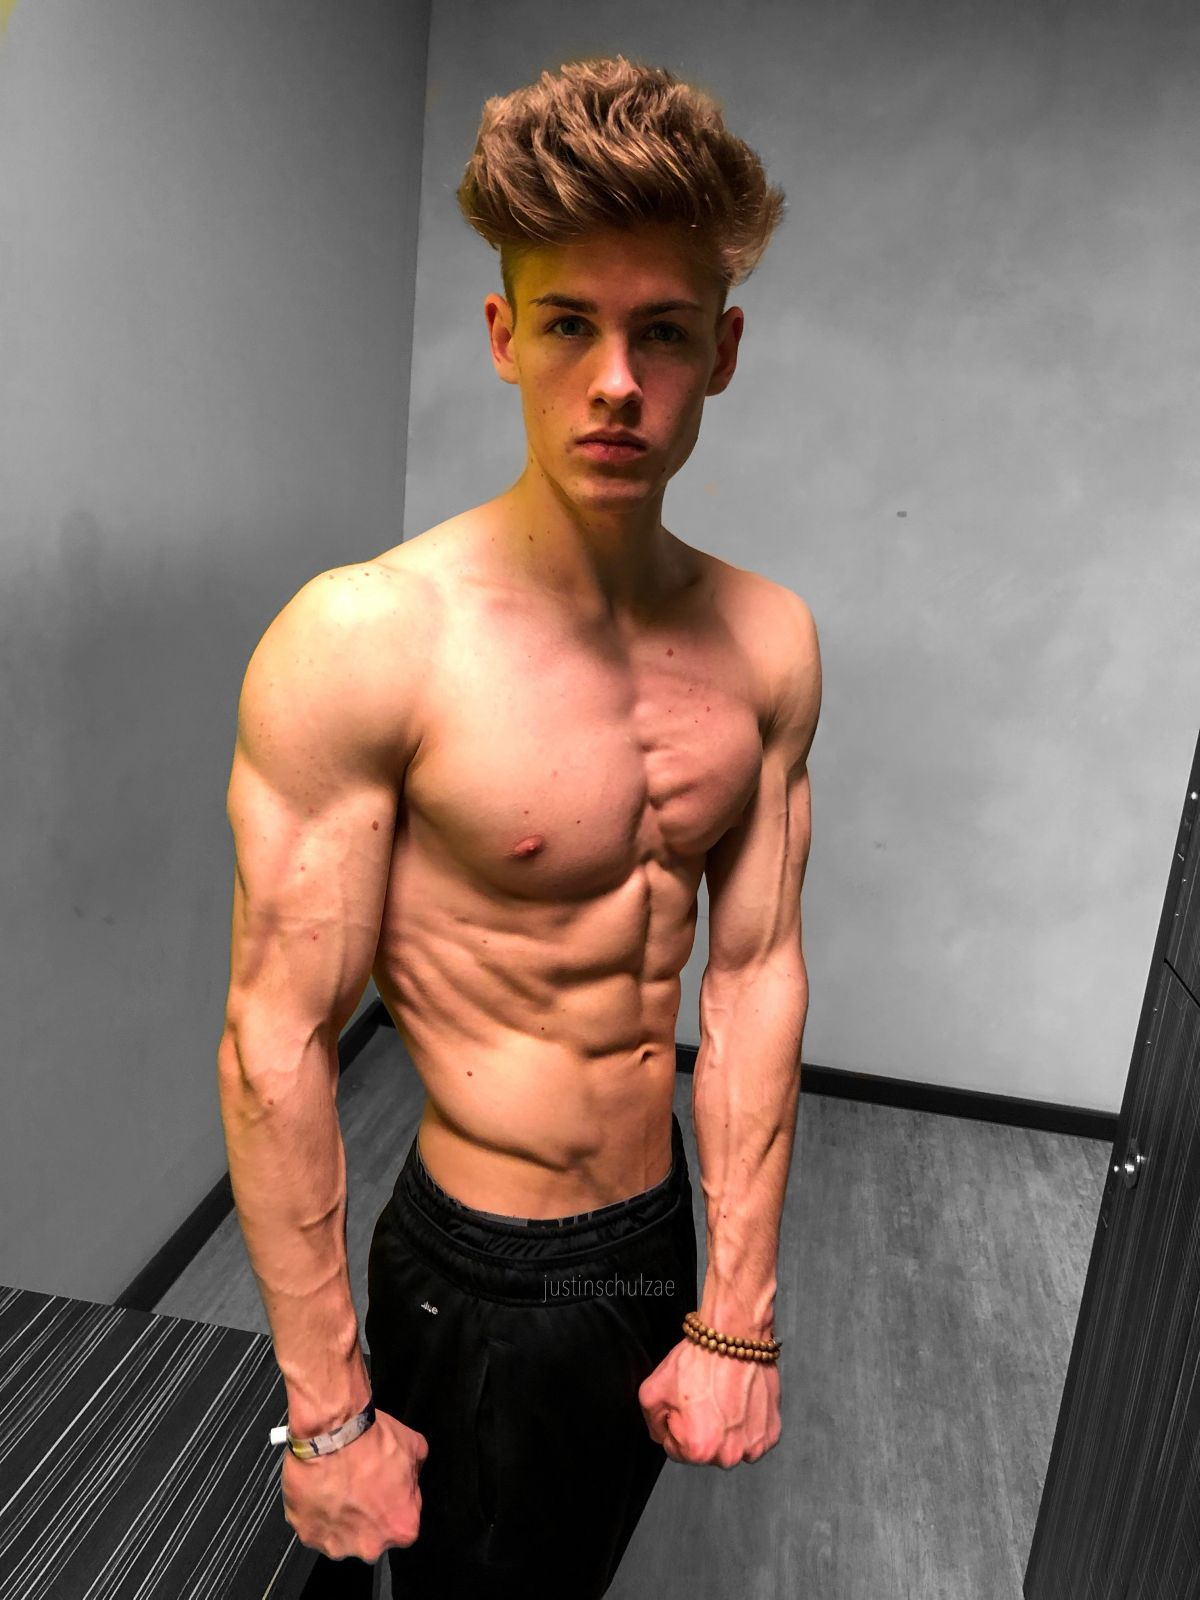 Free Lucashall onlyfans onlyfans leaked